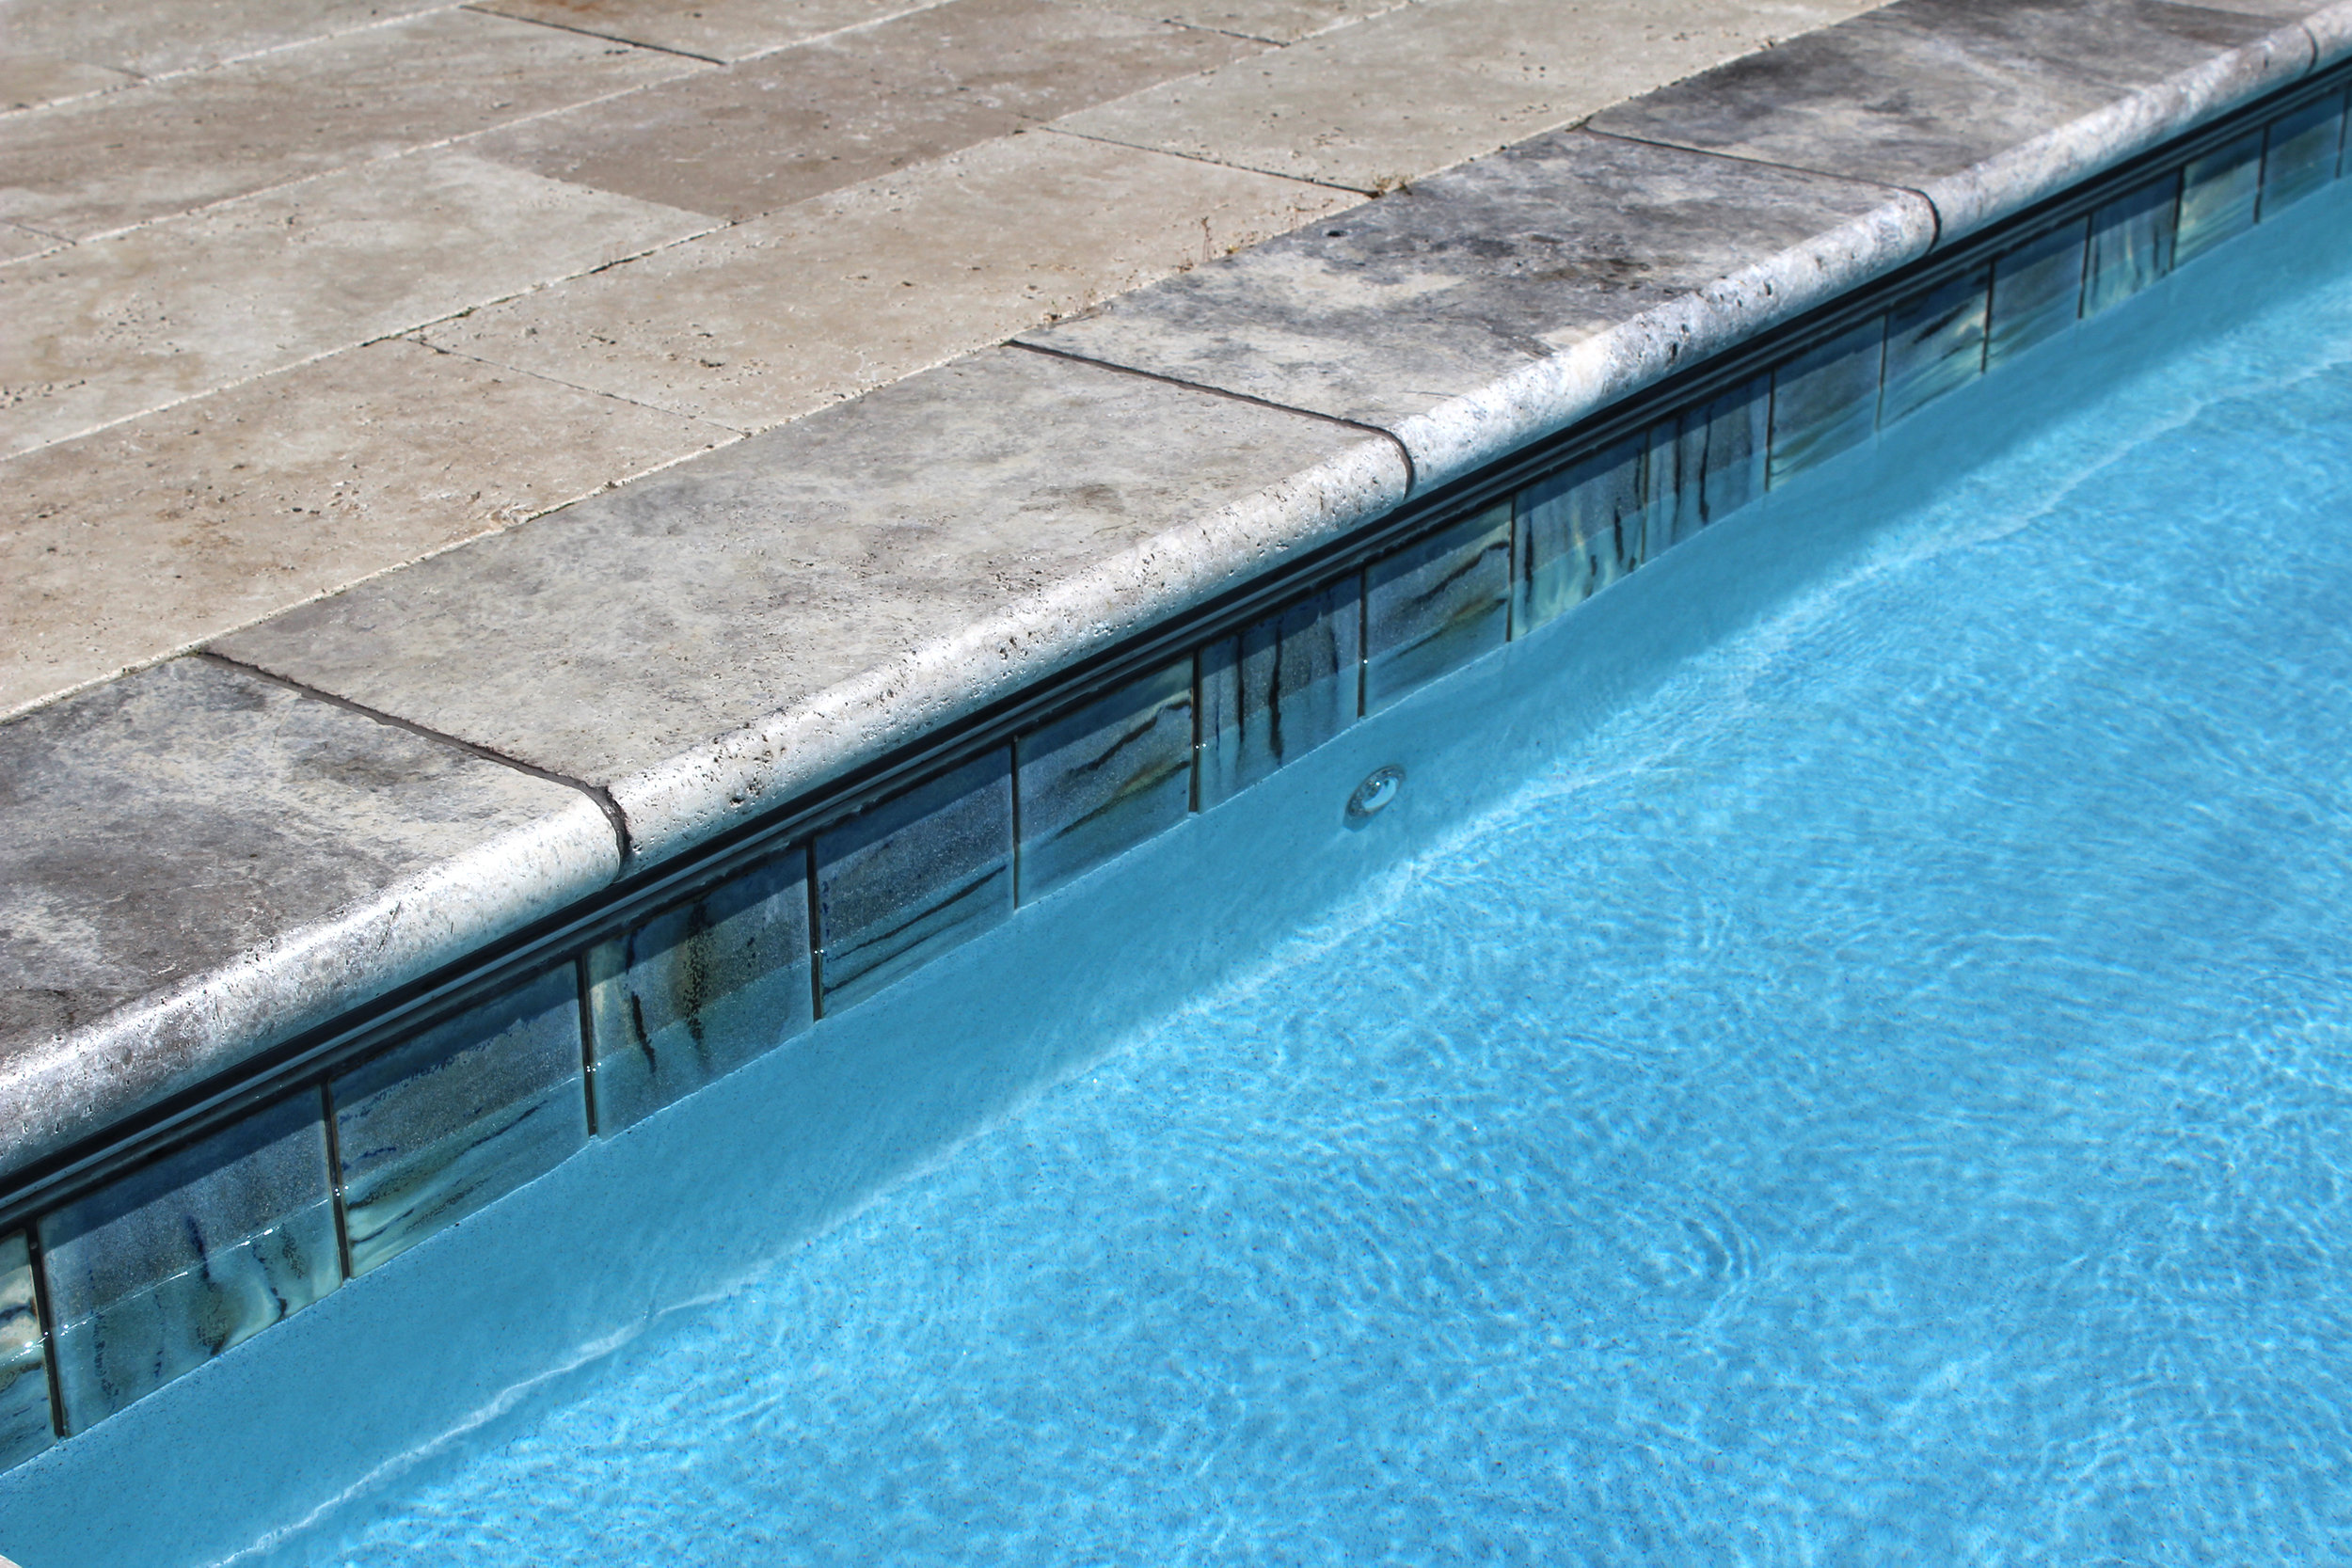 Tile & Coping - Porcelain Border TileBeautiful porcelain tile is installed at the water line on gunite and gunite-steel hybrid pools. We offer a wide variety of colors and styles from Fujiwa Tile, Artistry in Mosaics and Lightstreams Glass Tile to bring yourBullnose Travertine CopingTravertine is used for its aesthetics and functionality. It's available in multiple shades and with varying degrees of contrast. It's also a durable, low maintenance stone that stays cool on the feet, absorbs water and has a non-slip surface. Travertine is a great option for the pool deck as well.